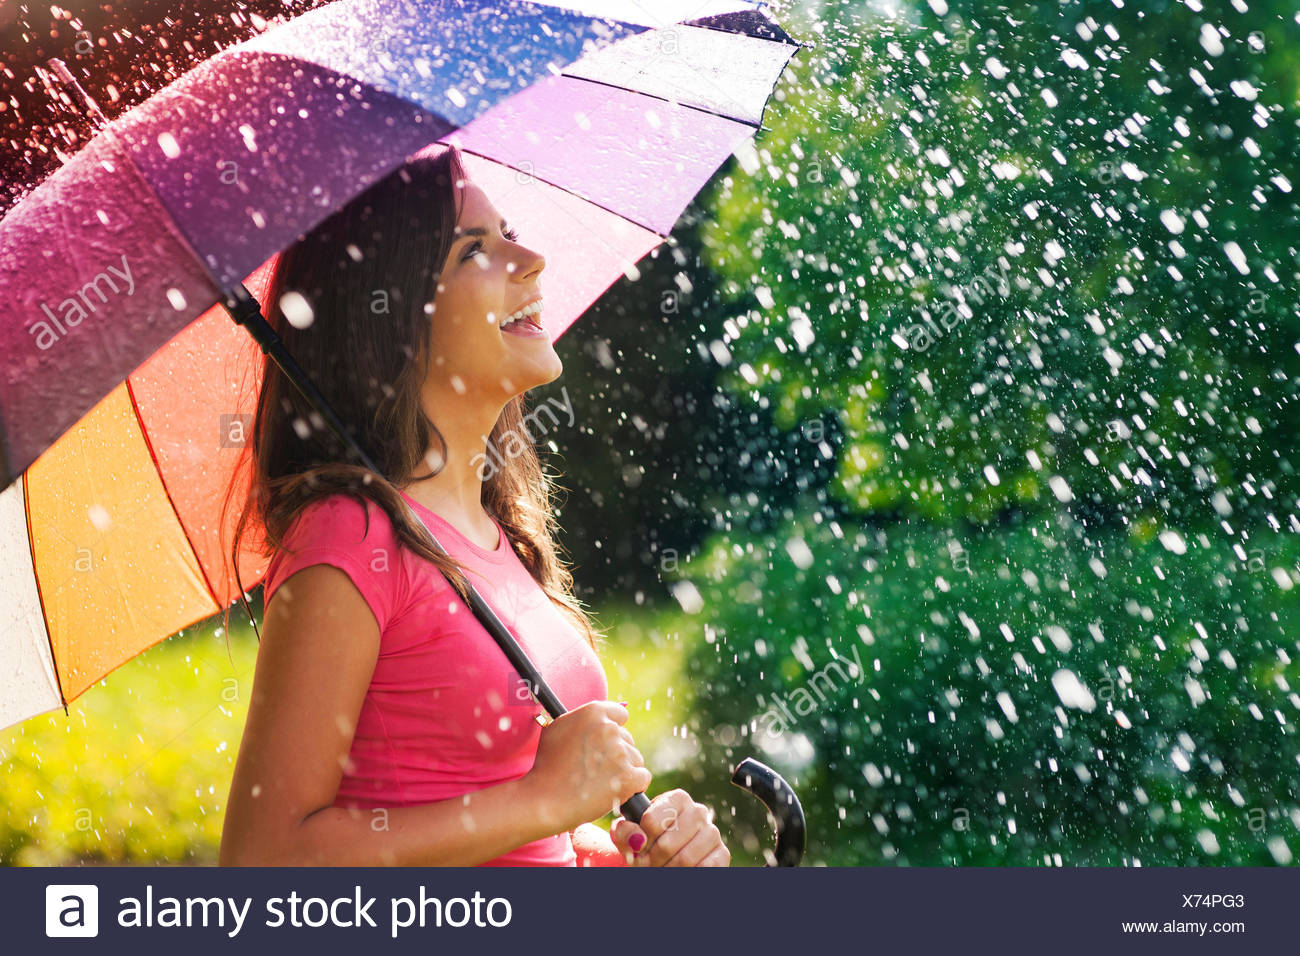 So much fun from summer rain  Debica, Poland - Stock Image